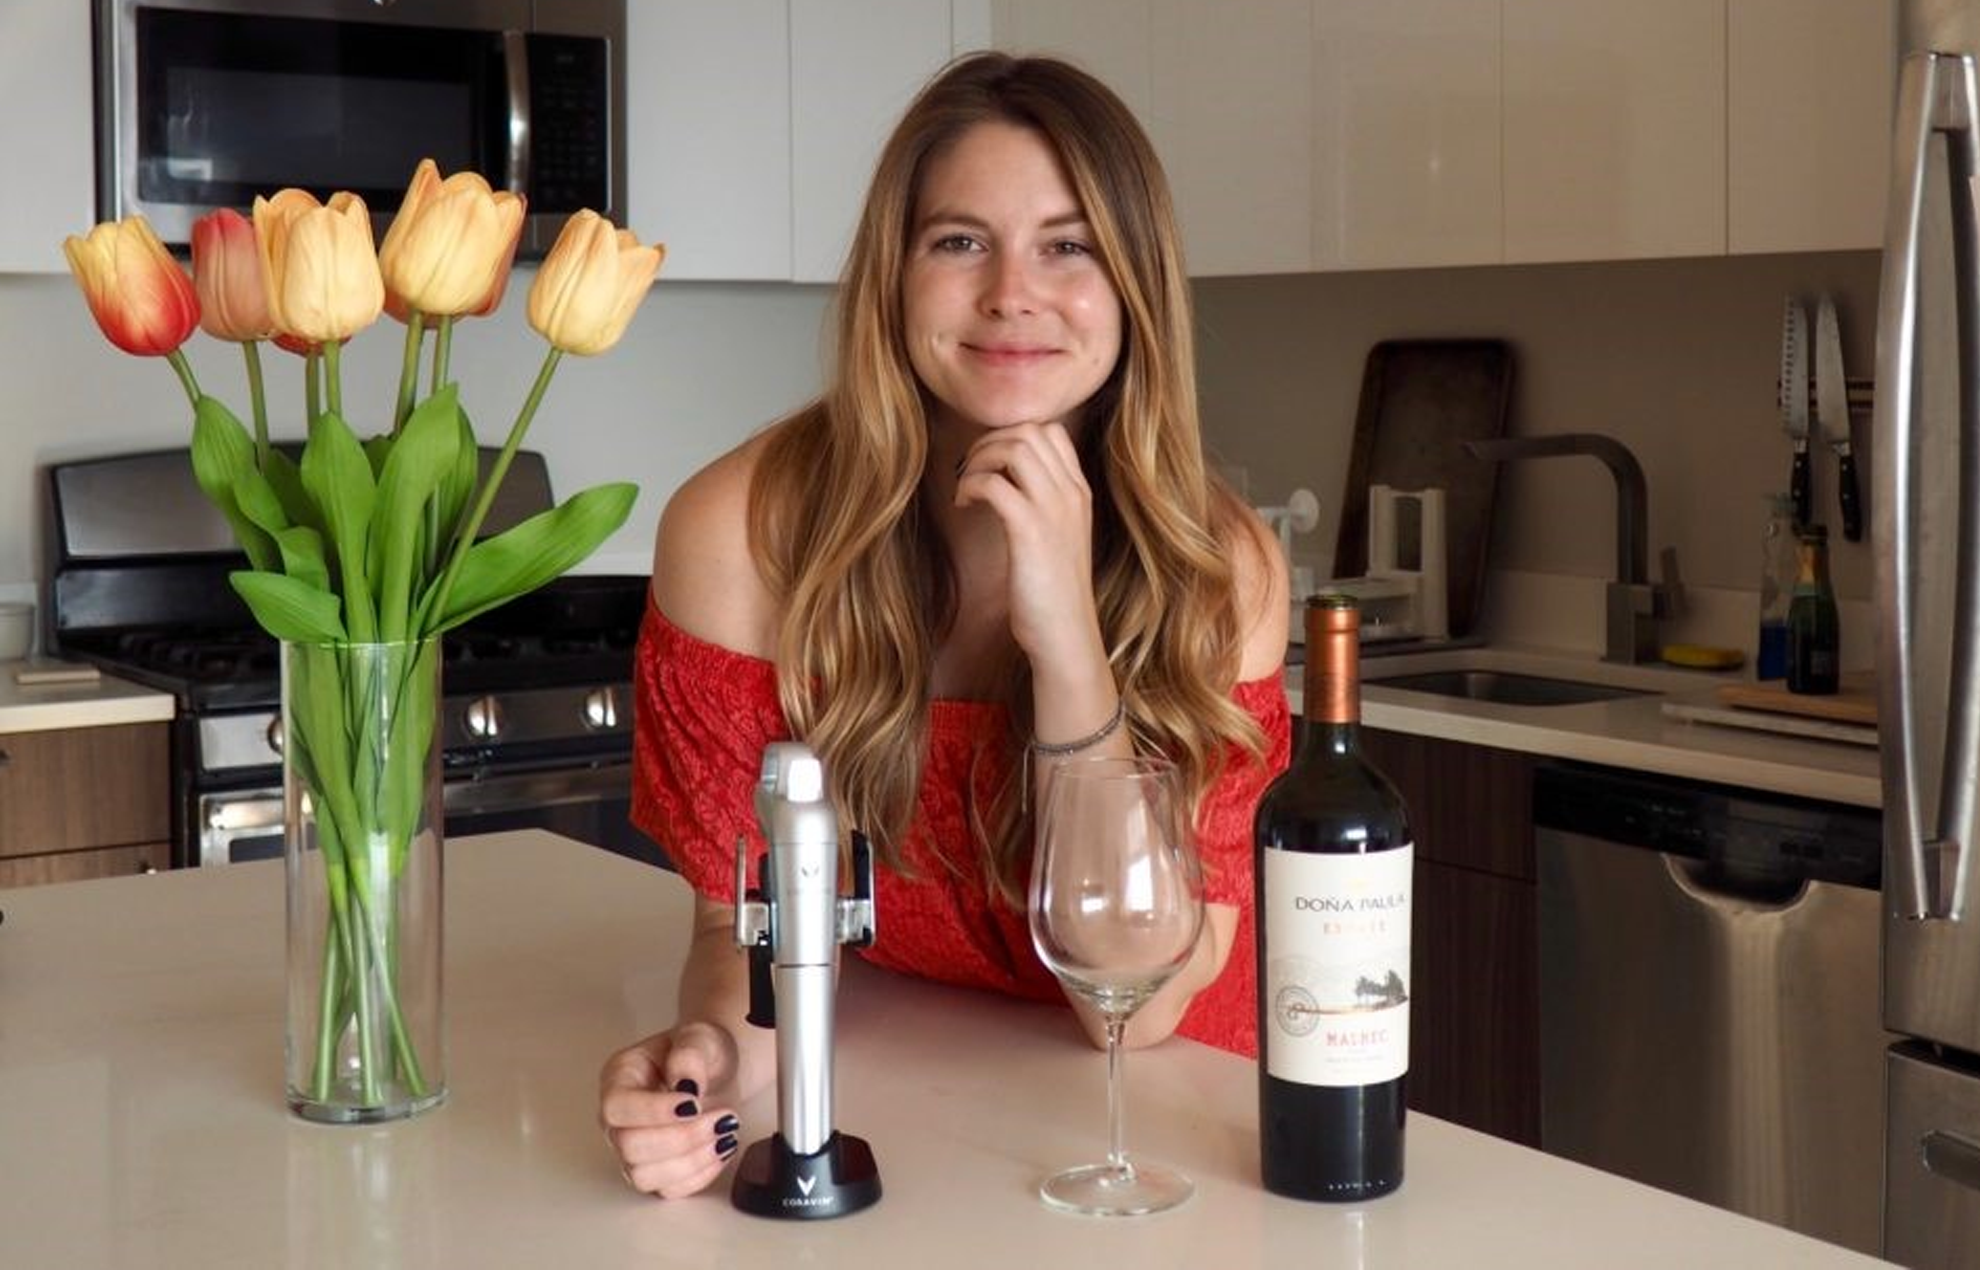 Chelsie Petras of Chel Loves Wine with a wine glass, wine bottle, and Coravin on table.